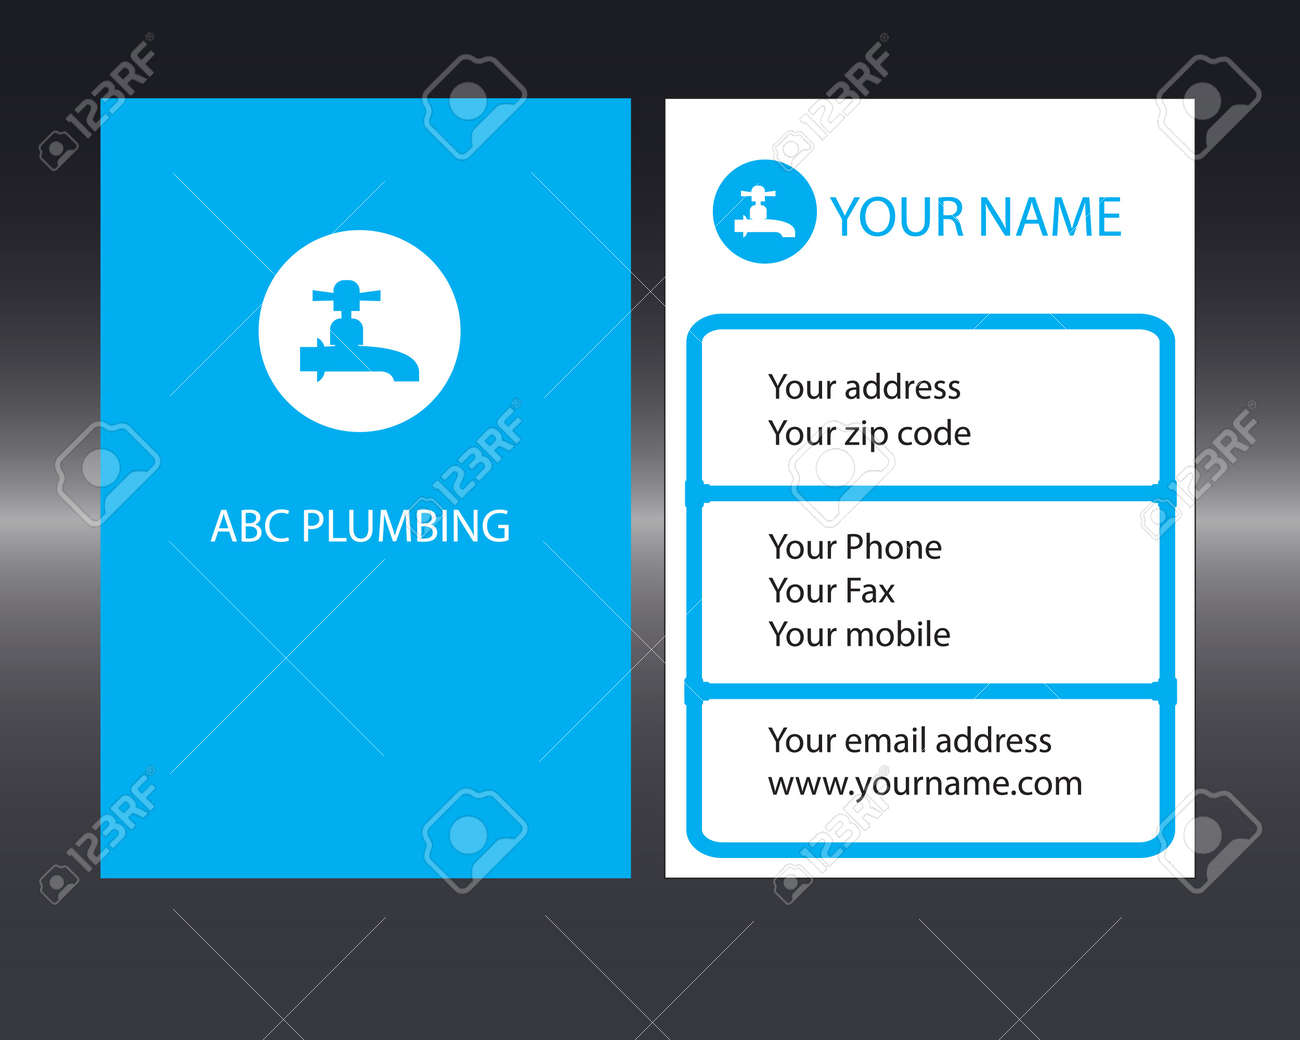 Plumbers business card with front and back designs royalty free plumbers business card with front and back designs stock vector 20891100 colourmoves